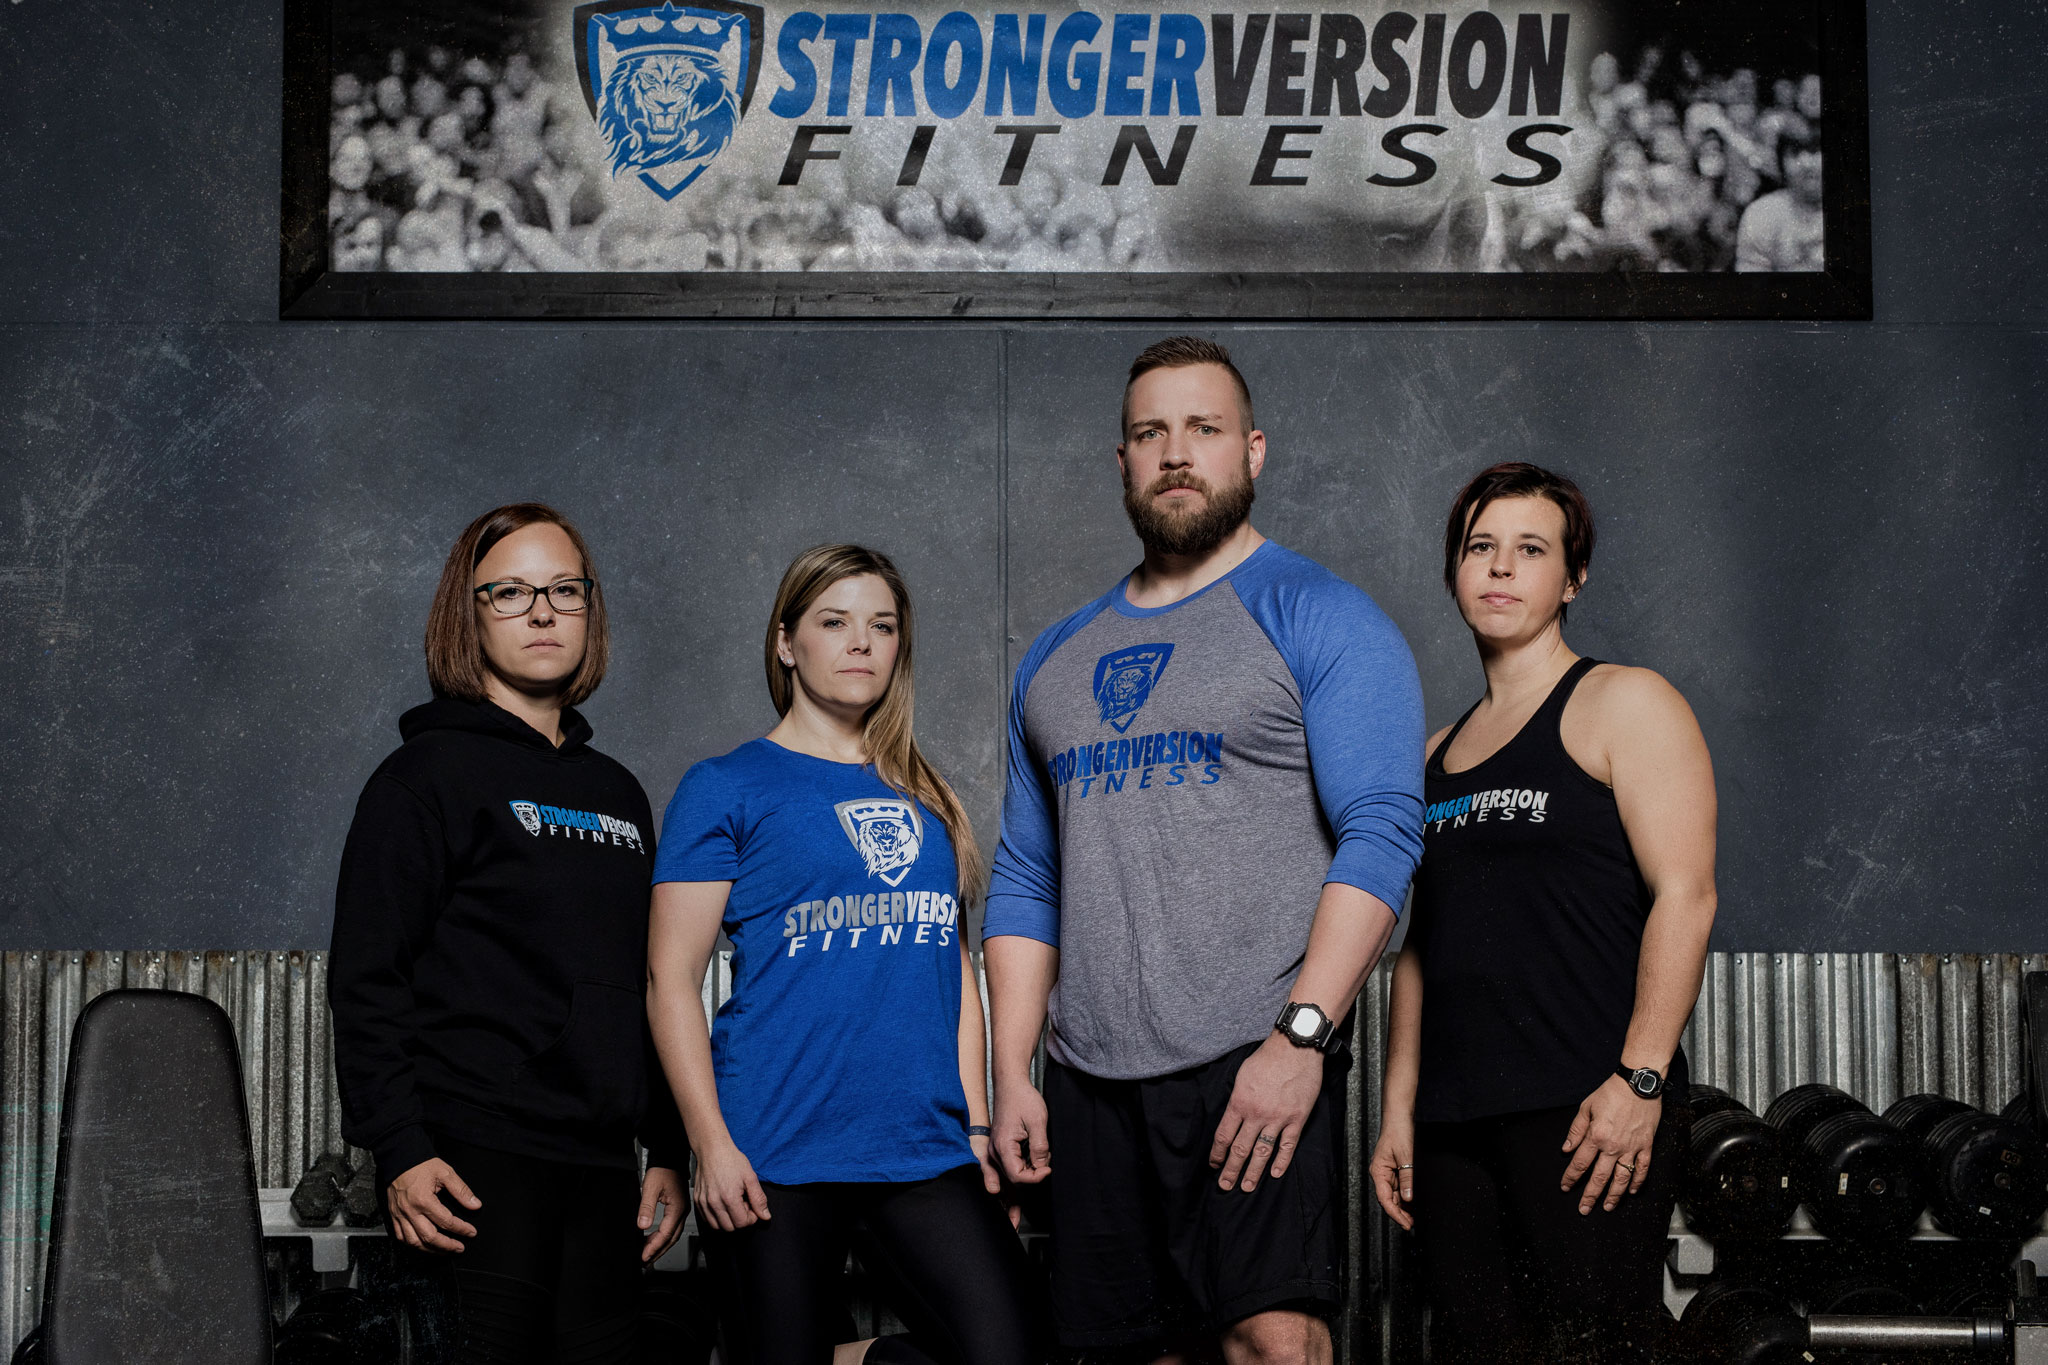 STRONGER-VERSION-FITNESS-2018.jpg